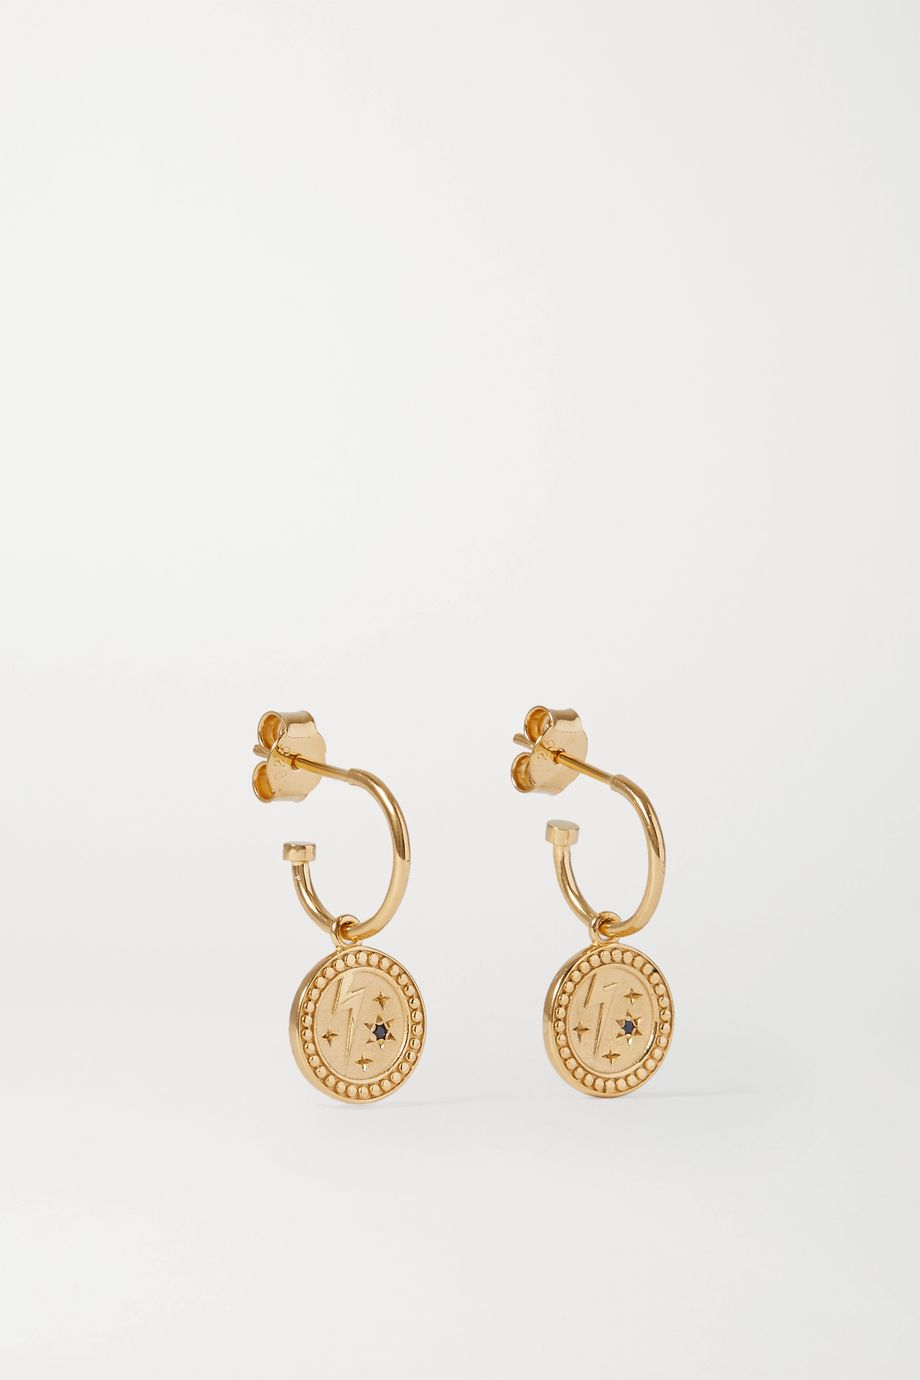 Meadowlark Amulet Strength gold-plated sapphire earrings